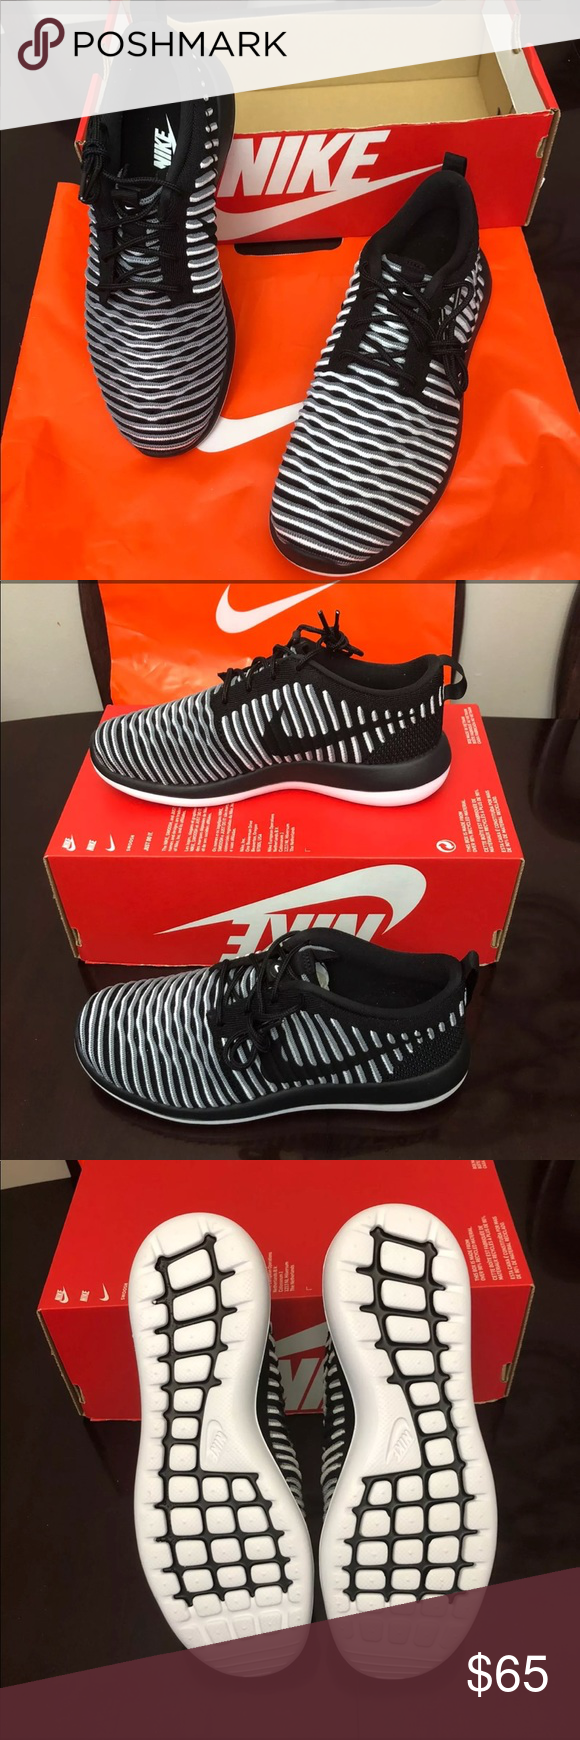 7de50e71bb185 Authentic WOMANS NIKE ROSHE TWO FLYKNIT BRAND NEW WOMANS NIKE ROSHE TWO  FLYKNIT IN ORIGINAL BOX but no cover 100% AUTHENTIC NEVER WORN Nike Shoes  Athletic ...